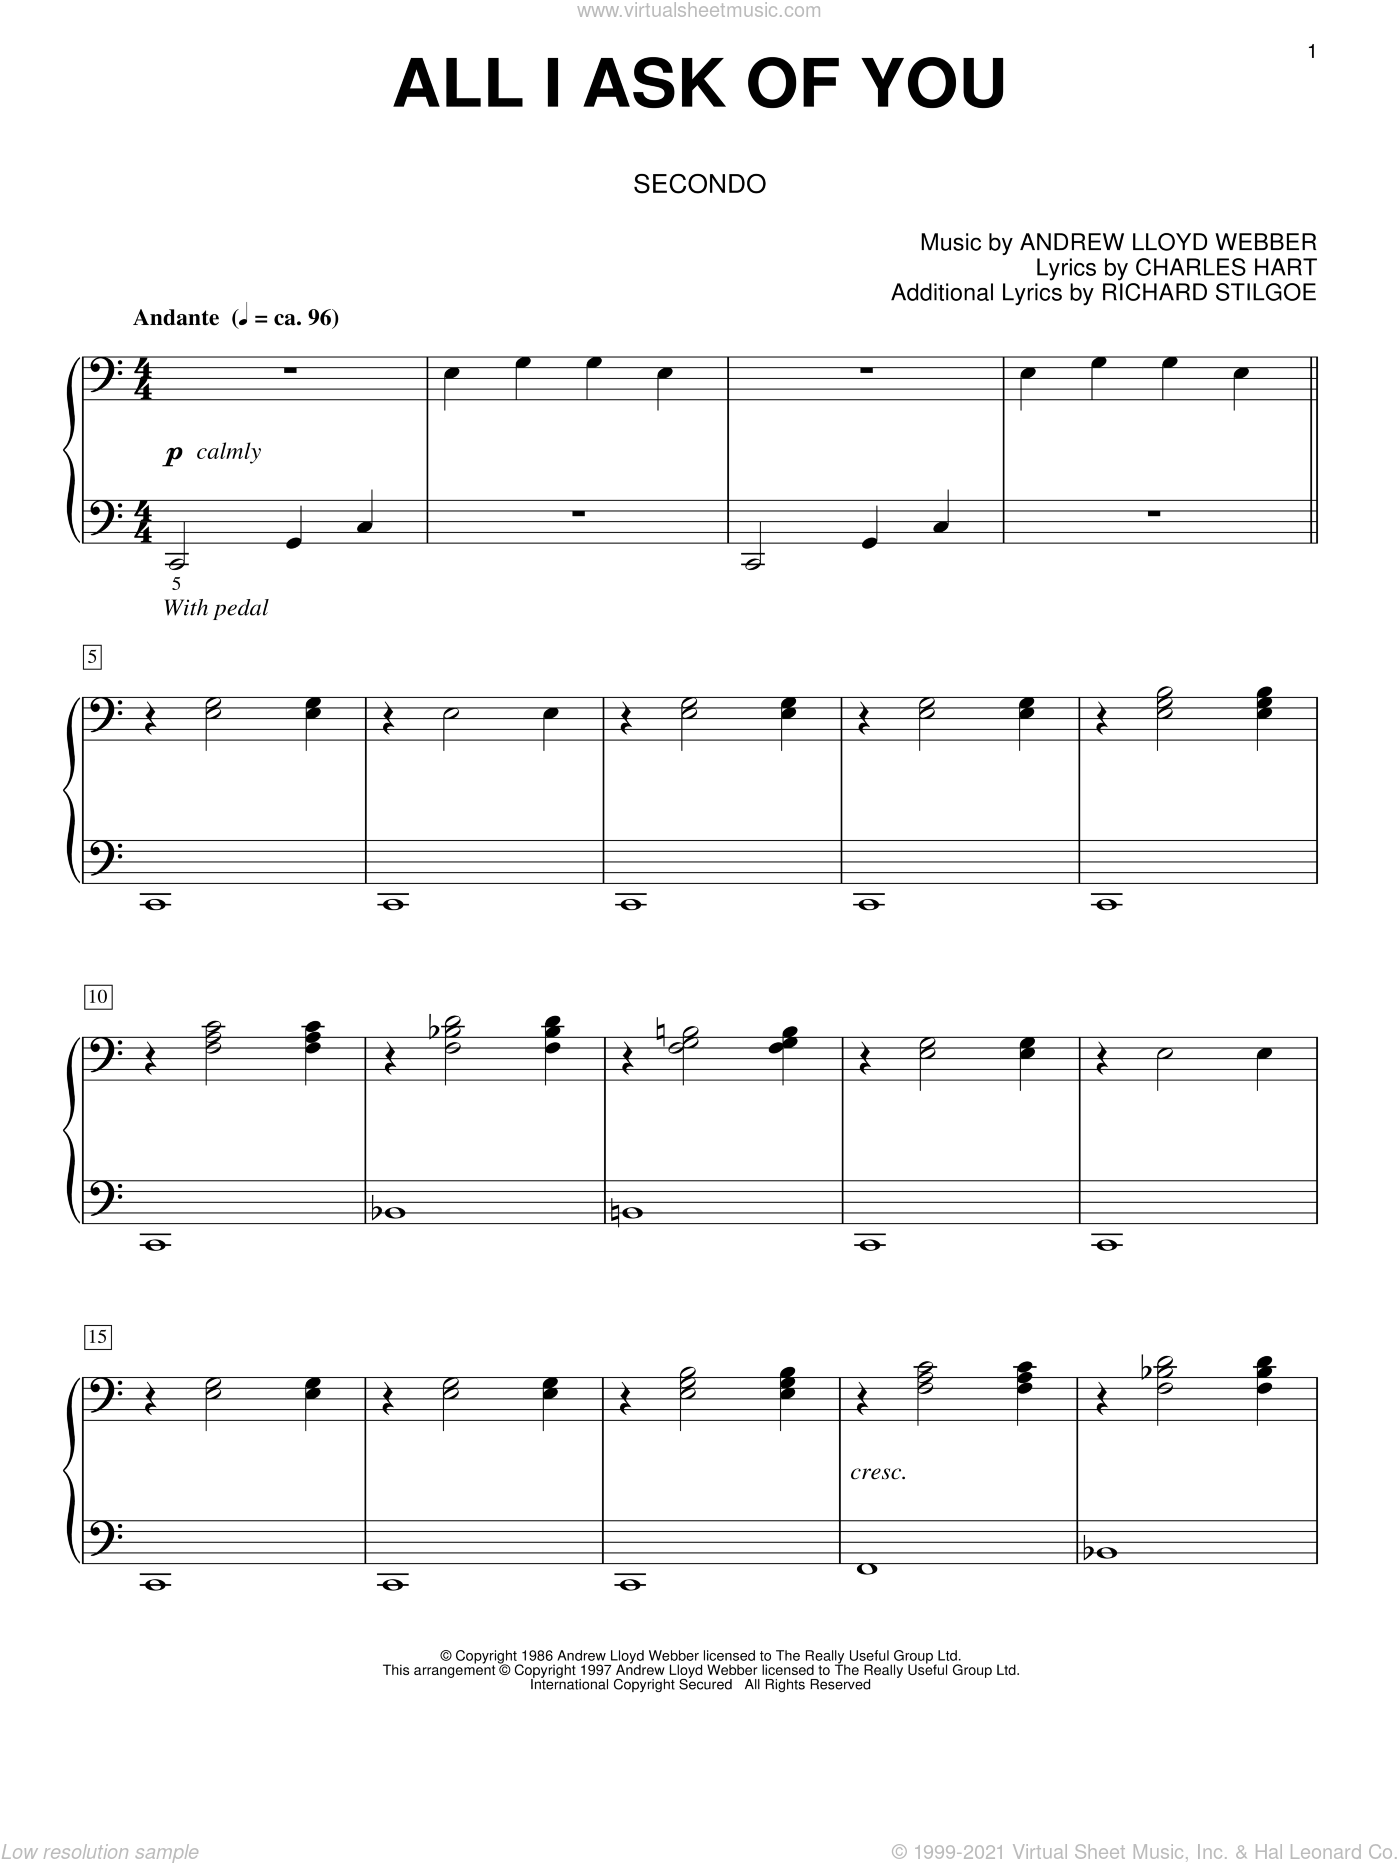 All I Ask Of You sheet music for piano four hands (duets) by Richard Stilgoe